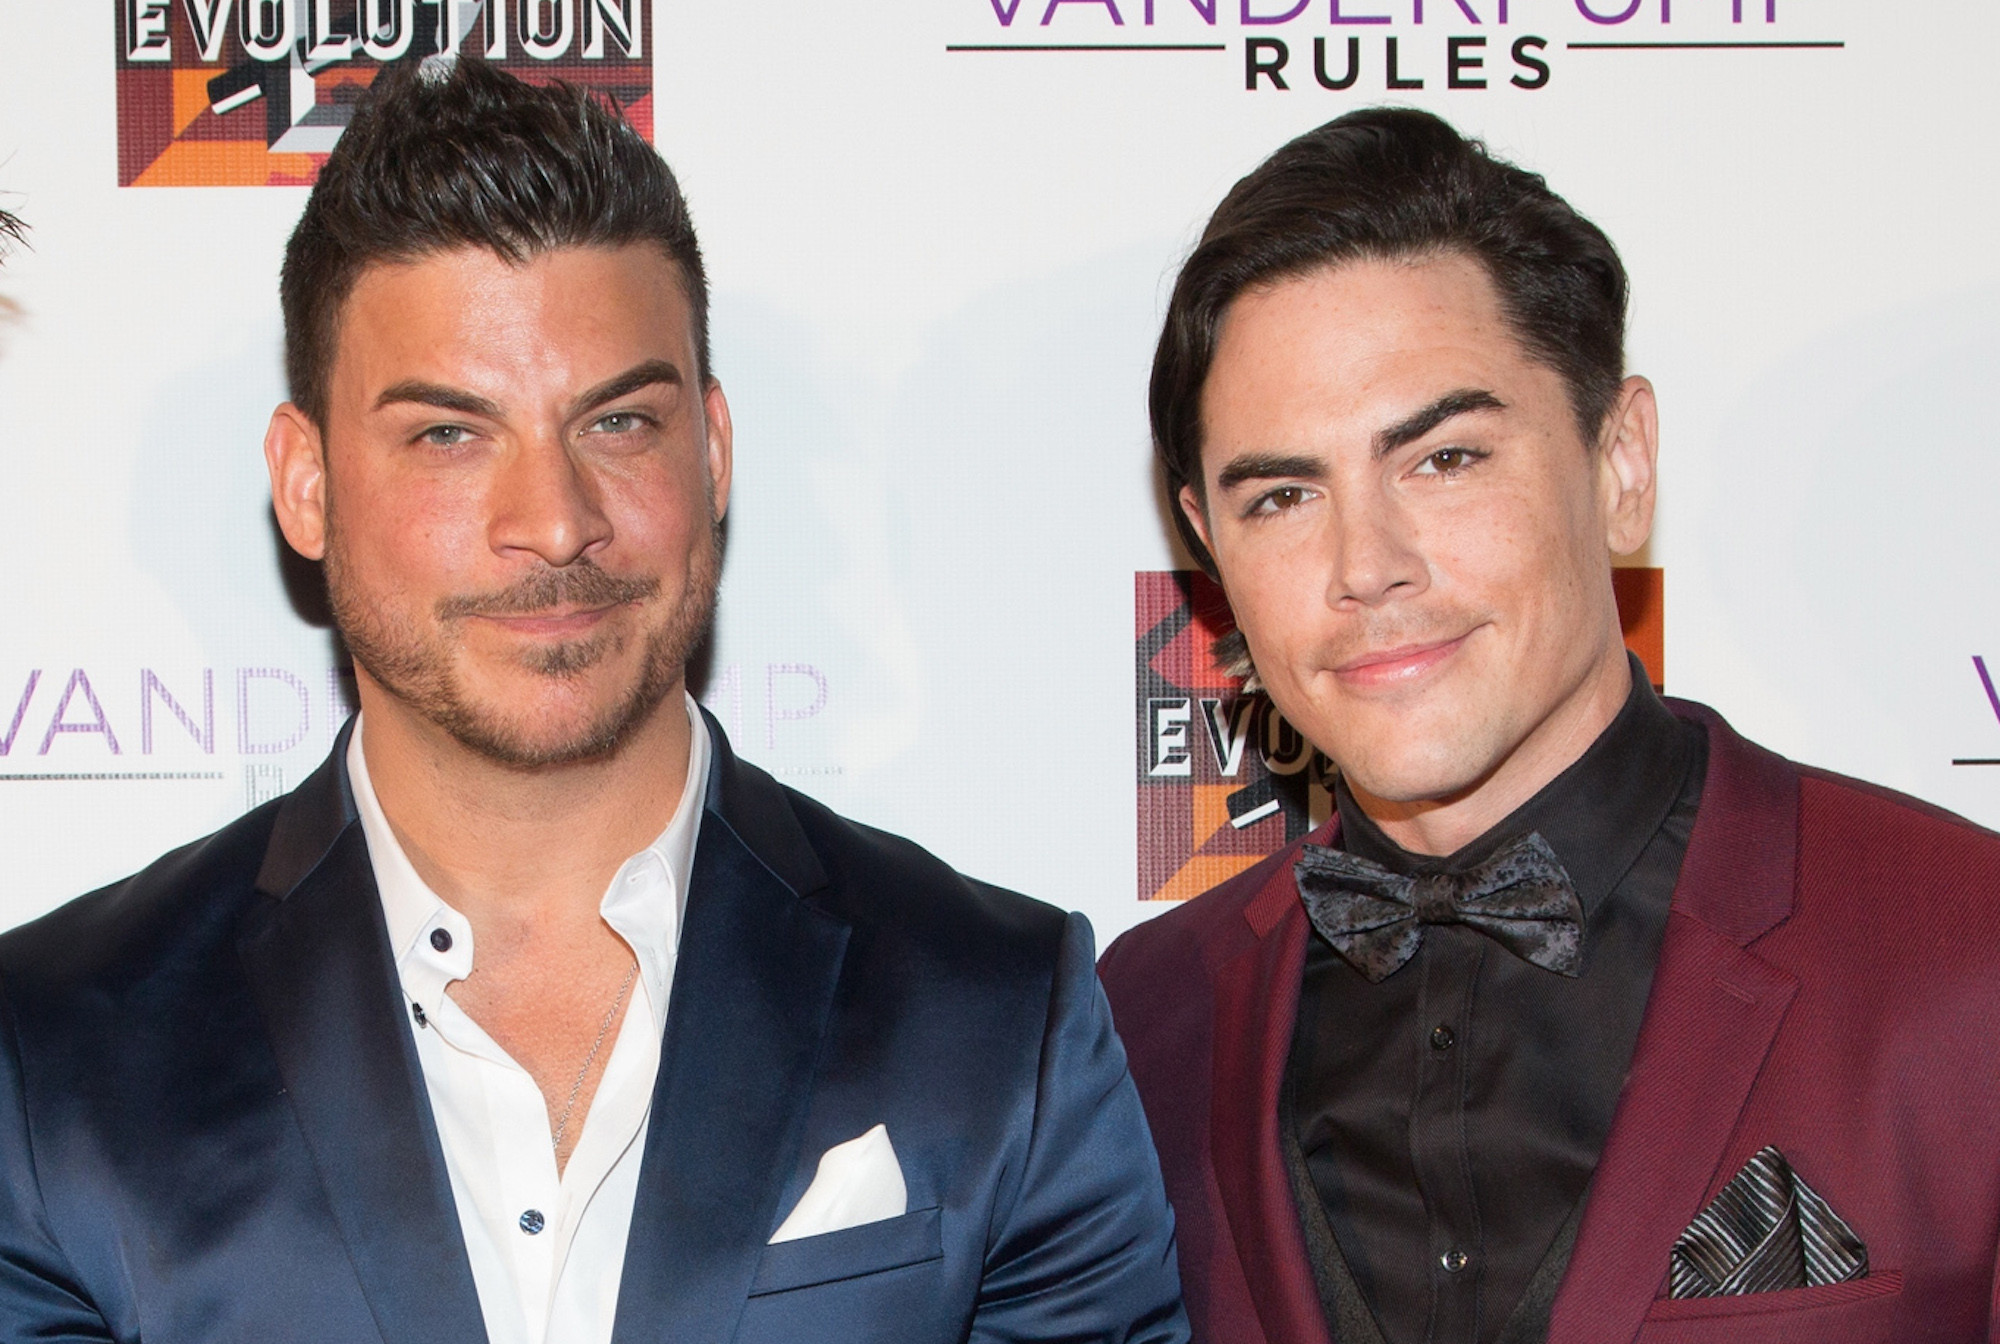 tom-sandoval-talks-about-his-feud-with-jax-taylor-who-shockingly-blocked-him-on-social-media-are-they-friends-again